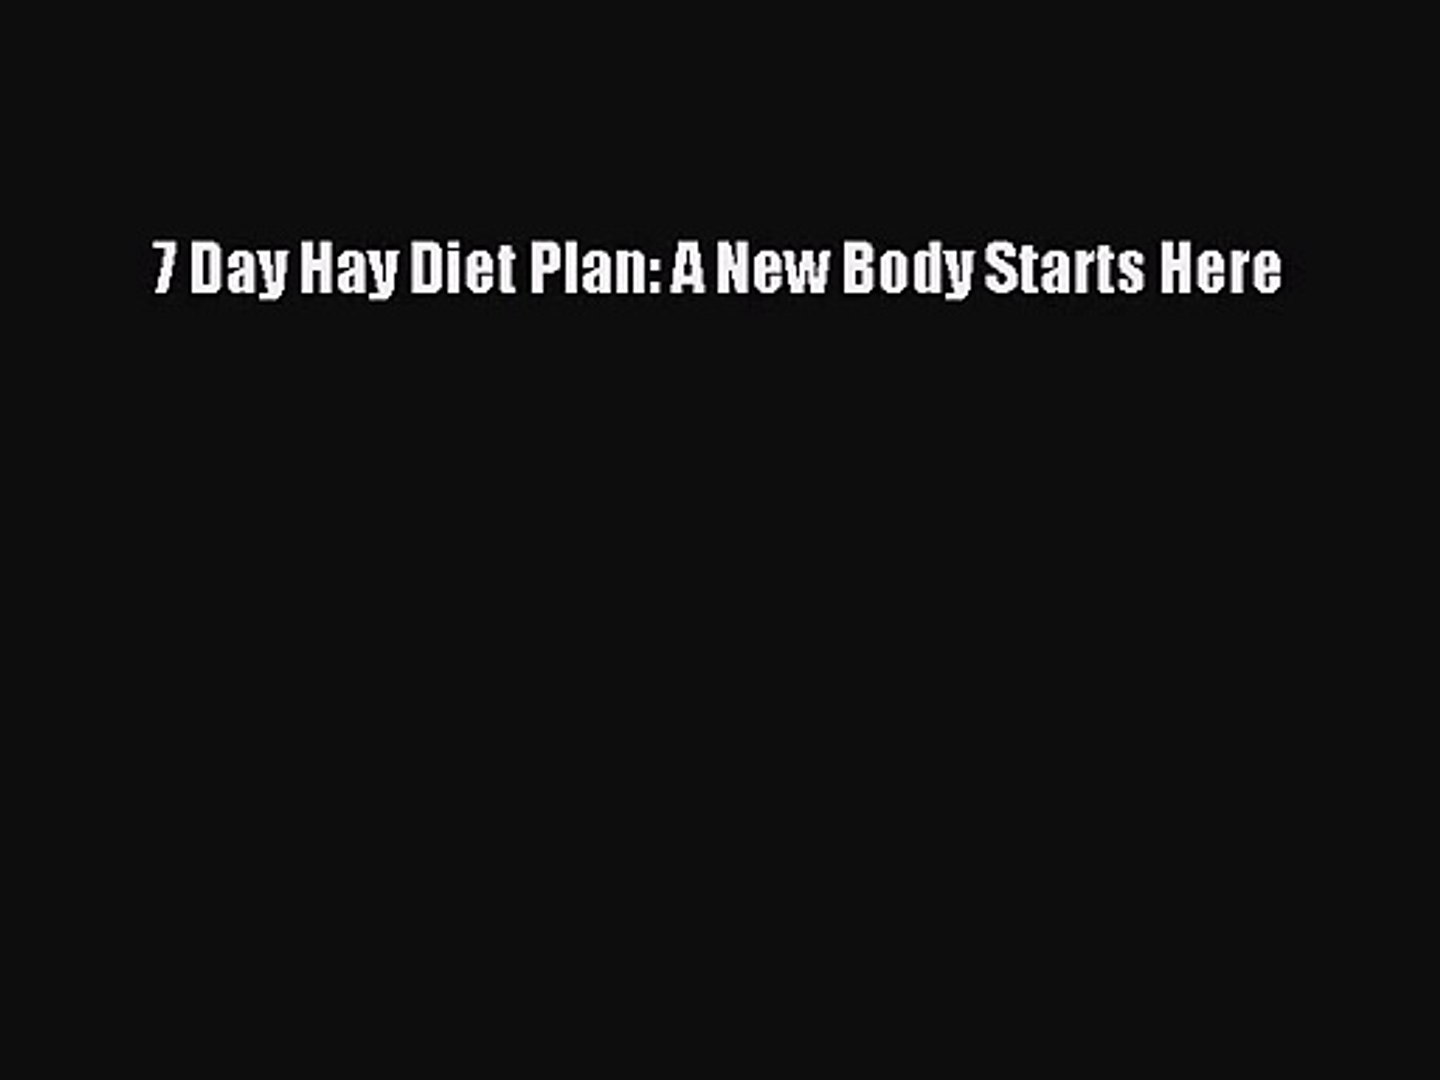 Pdf Download 7 Day Hay Diet Plan A New Body Starts Here Pdf Online Video Dailymotion